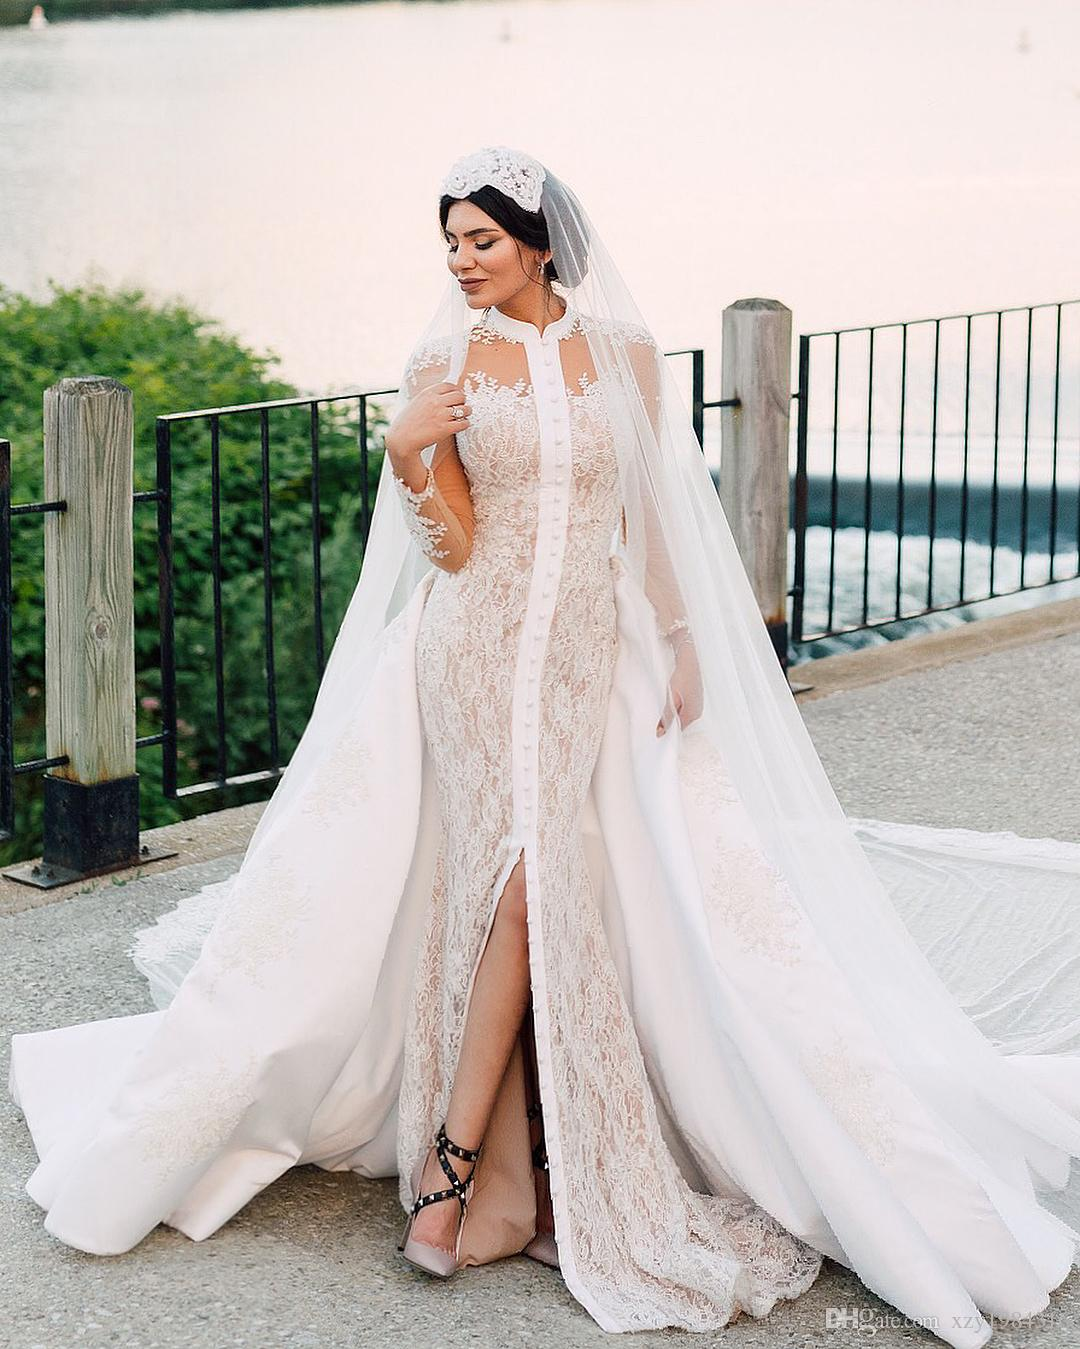 High Neck Mermaid Wedding Dress With Overskirt Stylish Covered Button Long Sleeve Lace Applique Bridal Dress Glamorous Charm Wedding Gowns